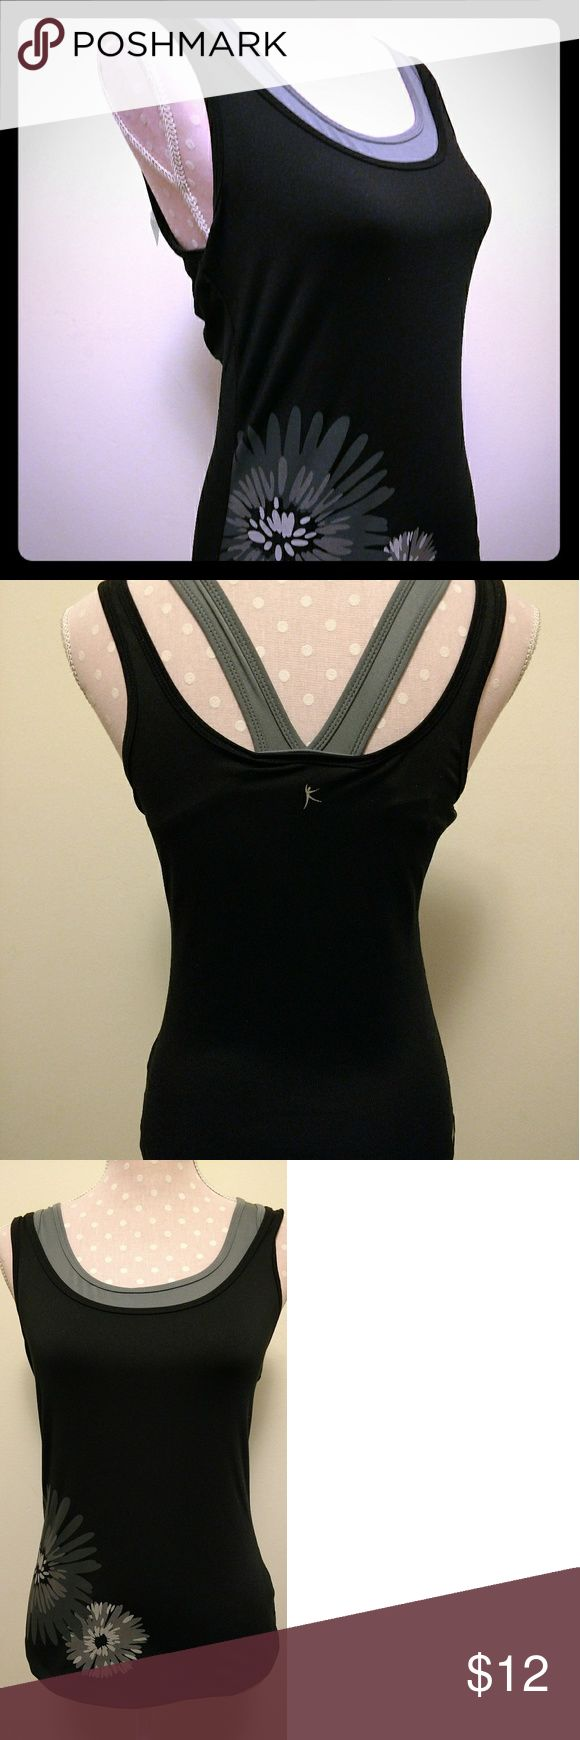 """Danskin Now Yoga Top Gray Black Medium Danskin Now ladies yoga top. 2 layers features a built in bra that is un-padded. Bra layer is gray and the outside main body is black with gray flower on the front. In excellent pre-owned condition  Across the chest is 15.5"""" un-stretched and from the shoulder to the hemline is 23"""". Danskin Now Tops Tank Tops"""